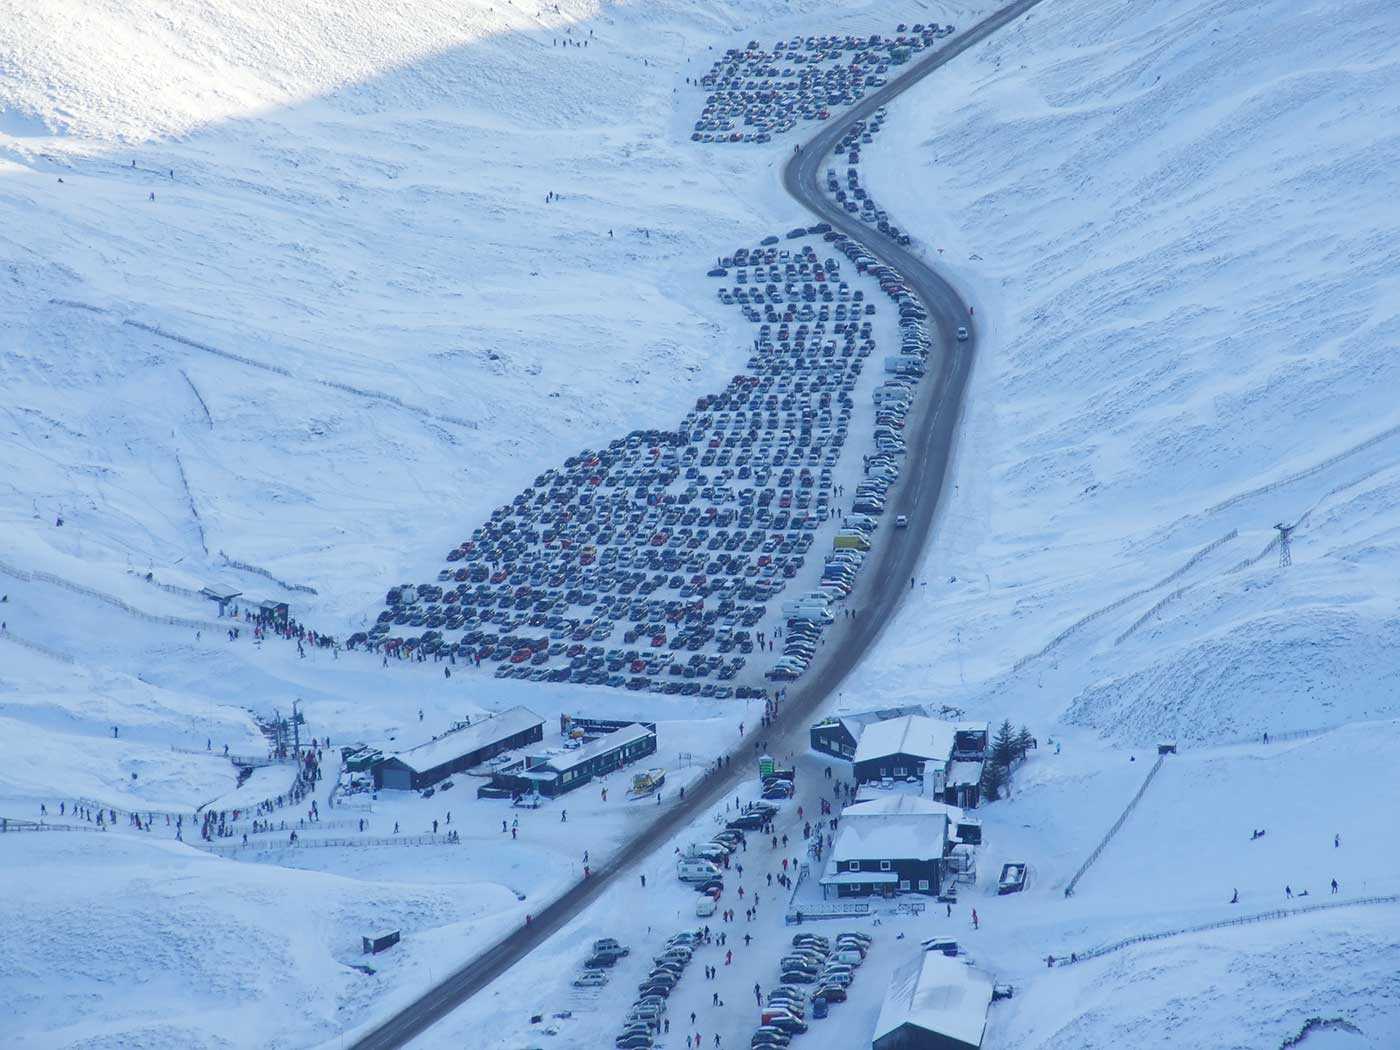 Parking Ticket Office And Cafe Facilities At Glenshee